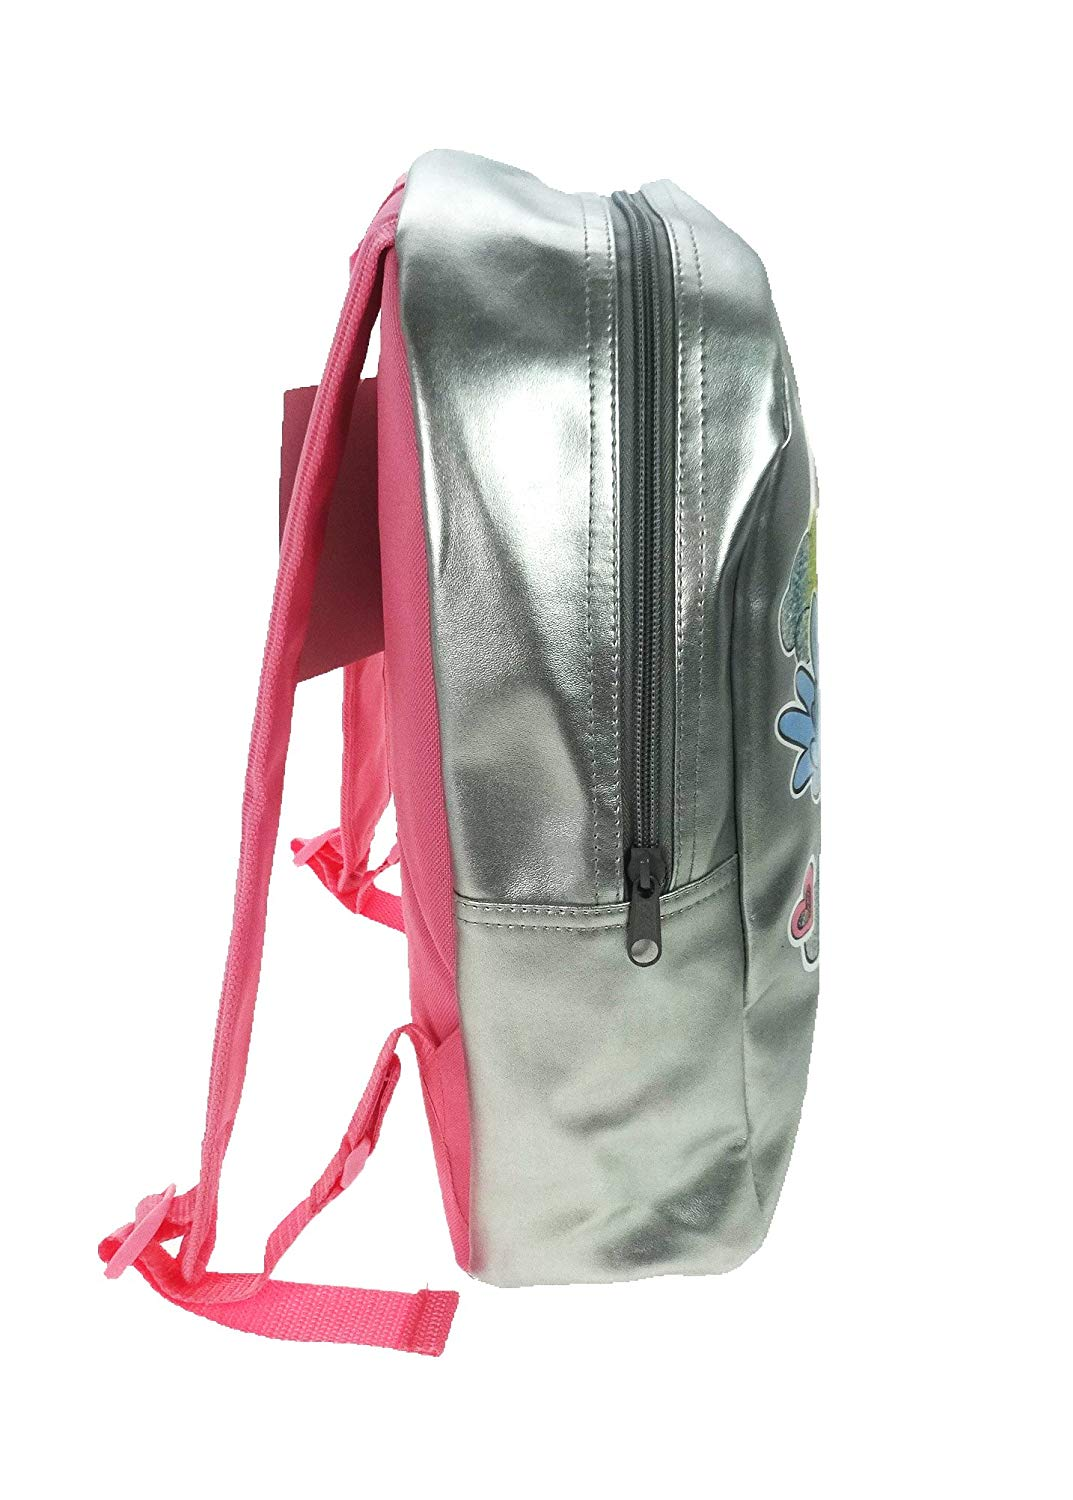 My Little Pony Novelty Silver School Bag Rucksack Backpack